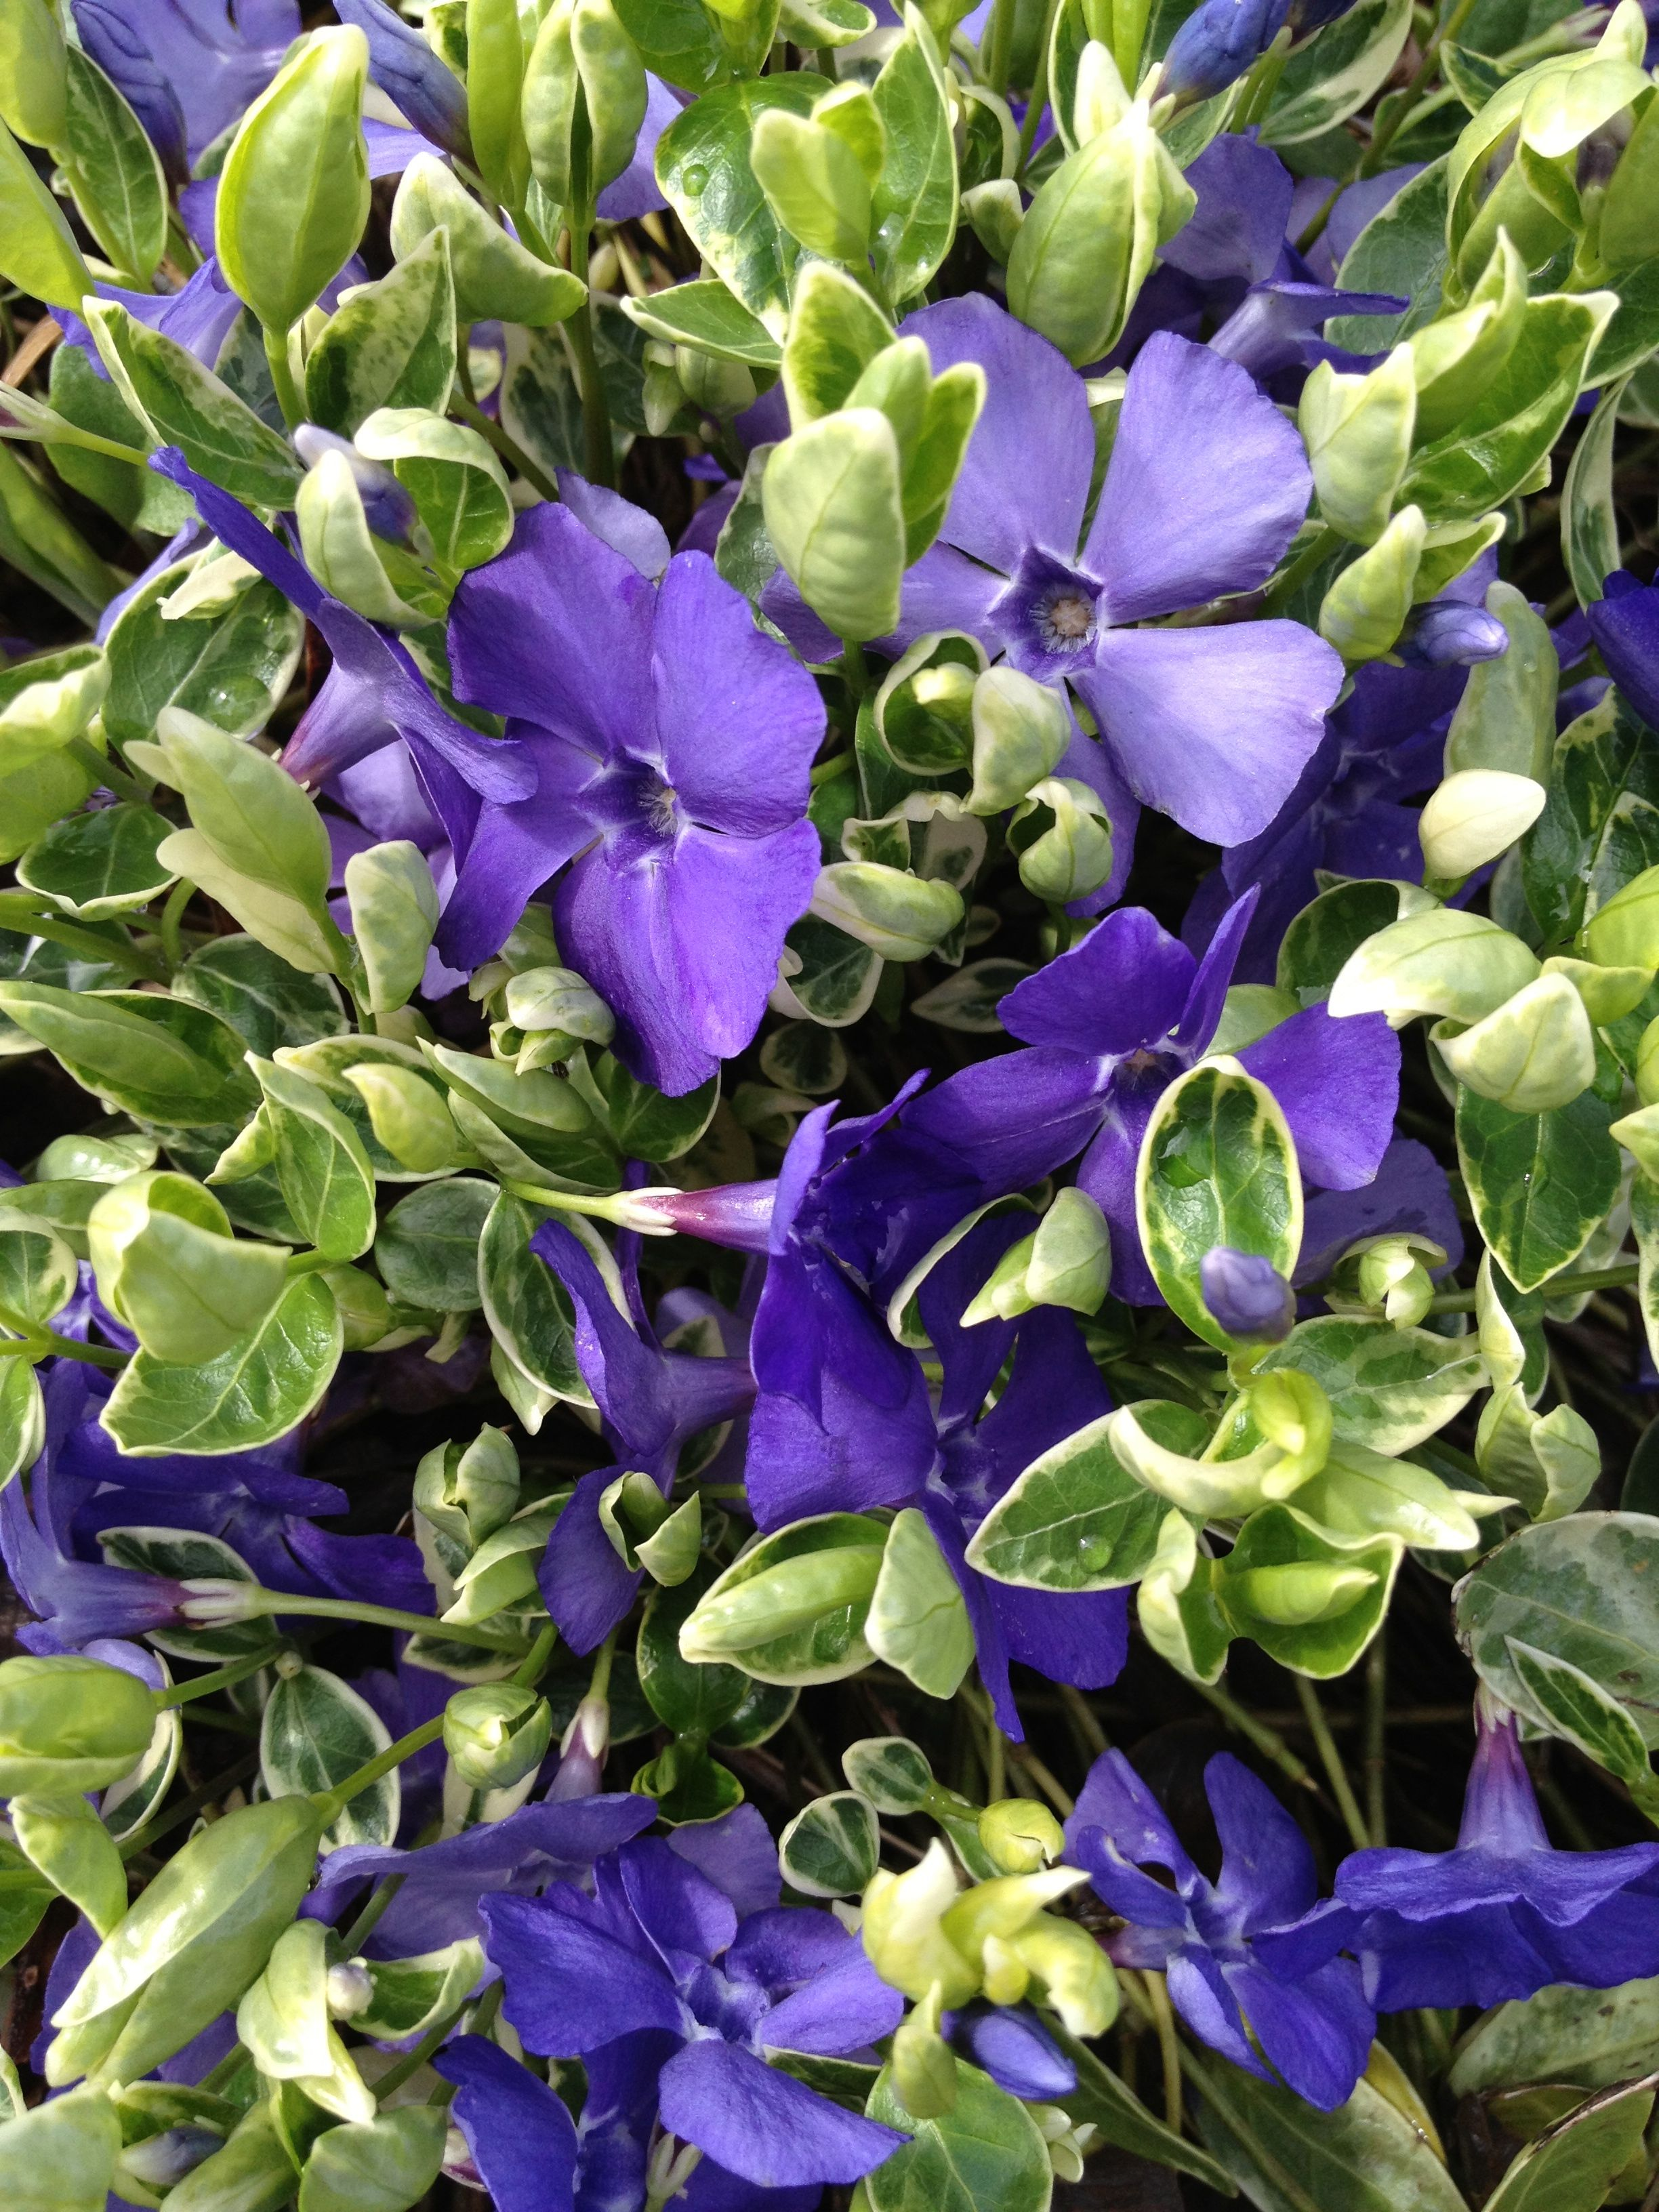 Periwinkle  An Evergreen Ground Cover With Long Lasting Bright Purple  Flowers With A Fairly Long